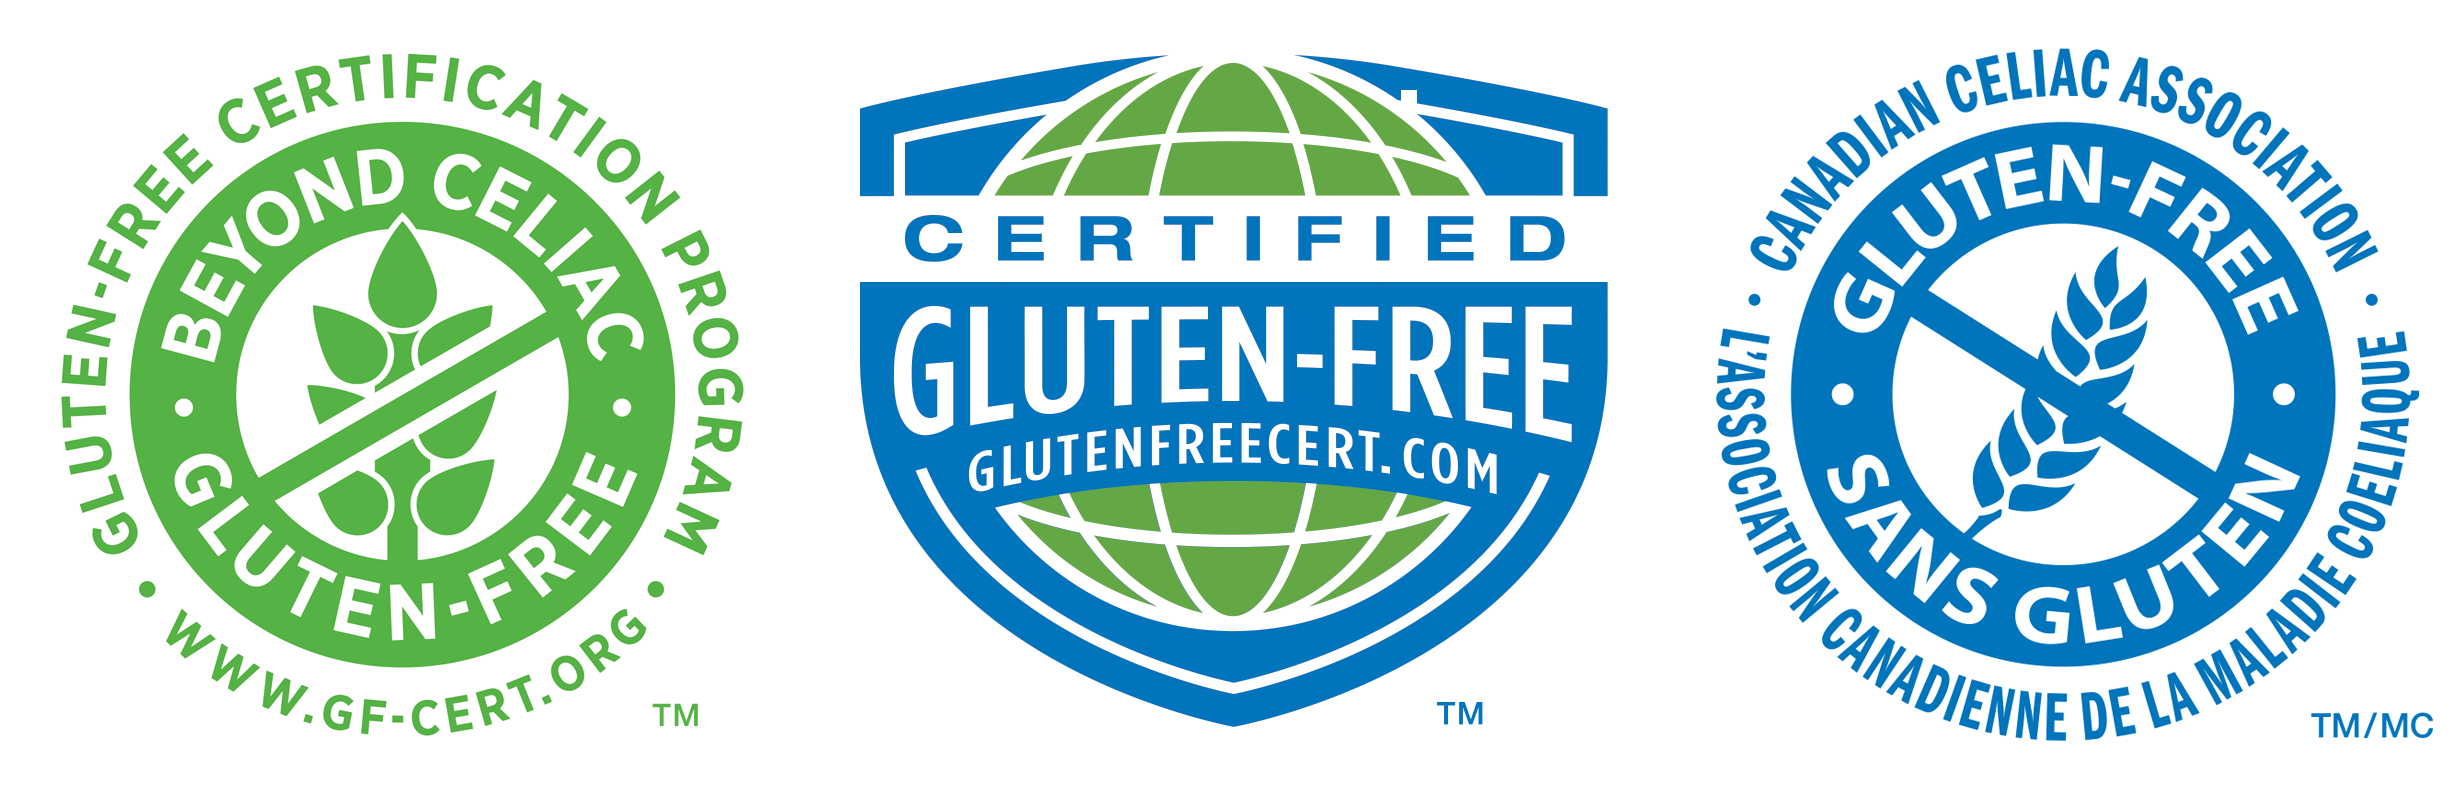 Gluten Free Certification Eagle Certification Group